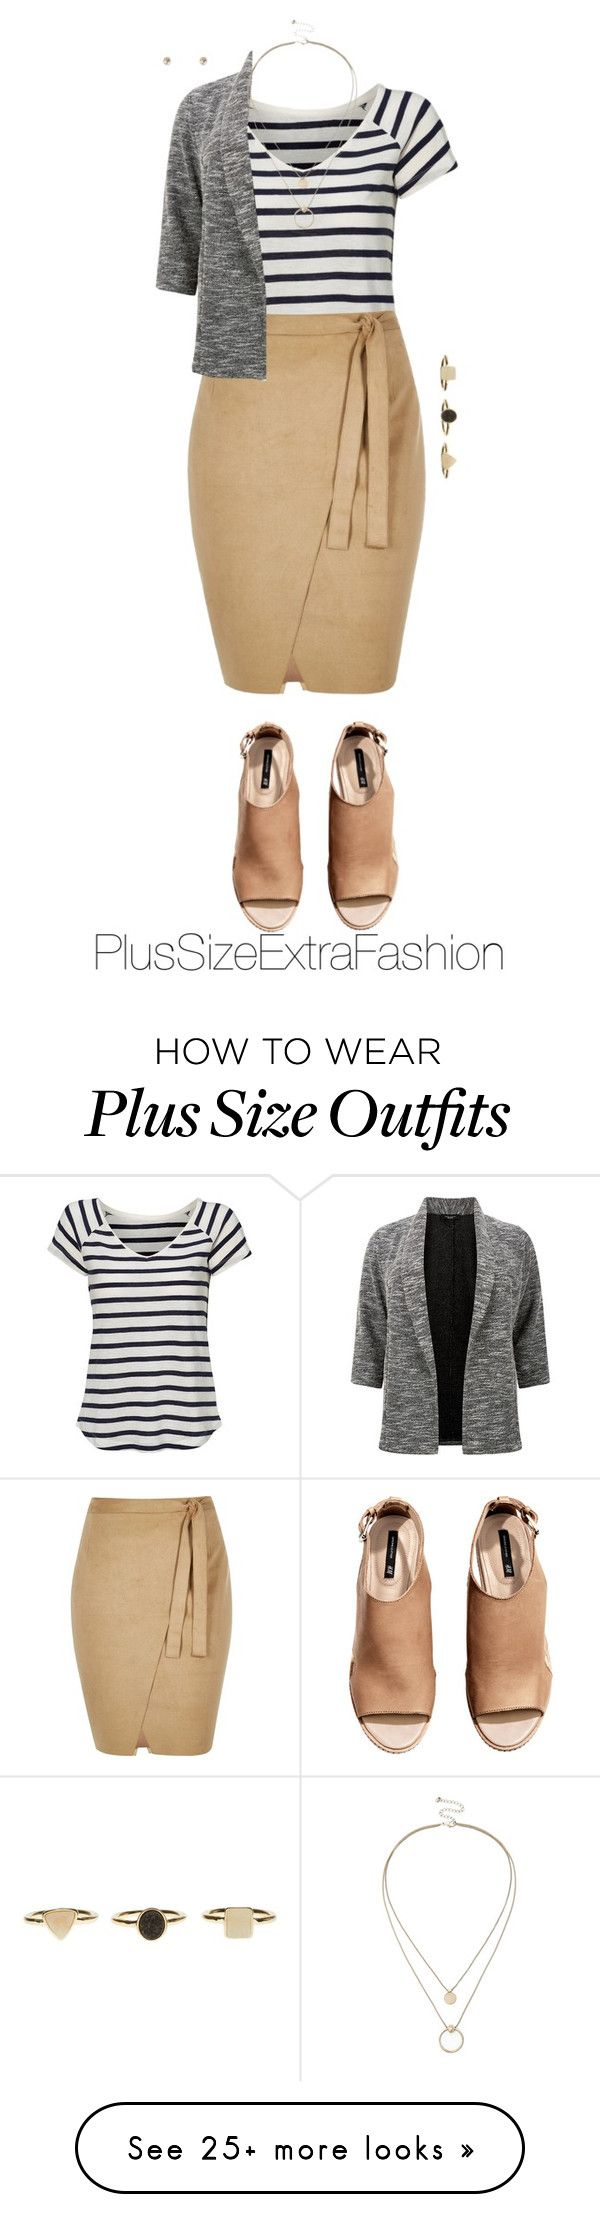 """Plus Size Spring Workwear ft. Wrap Skirt and Stripes"" by plussizeextrafashion on Polyvore featuring Jessica London, River Island, H&M, Sole Society, Forever 21, WorkWear, plussize, spring2016 and plussizeextrafashion"